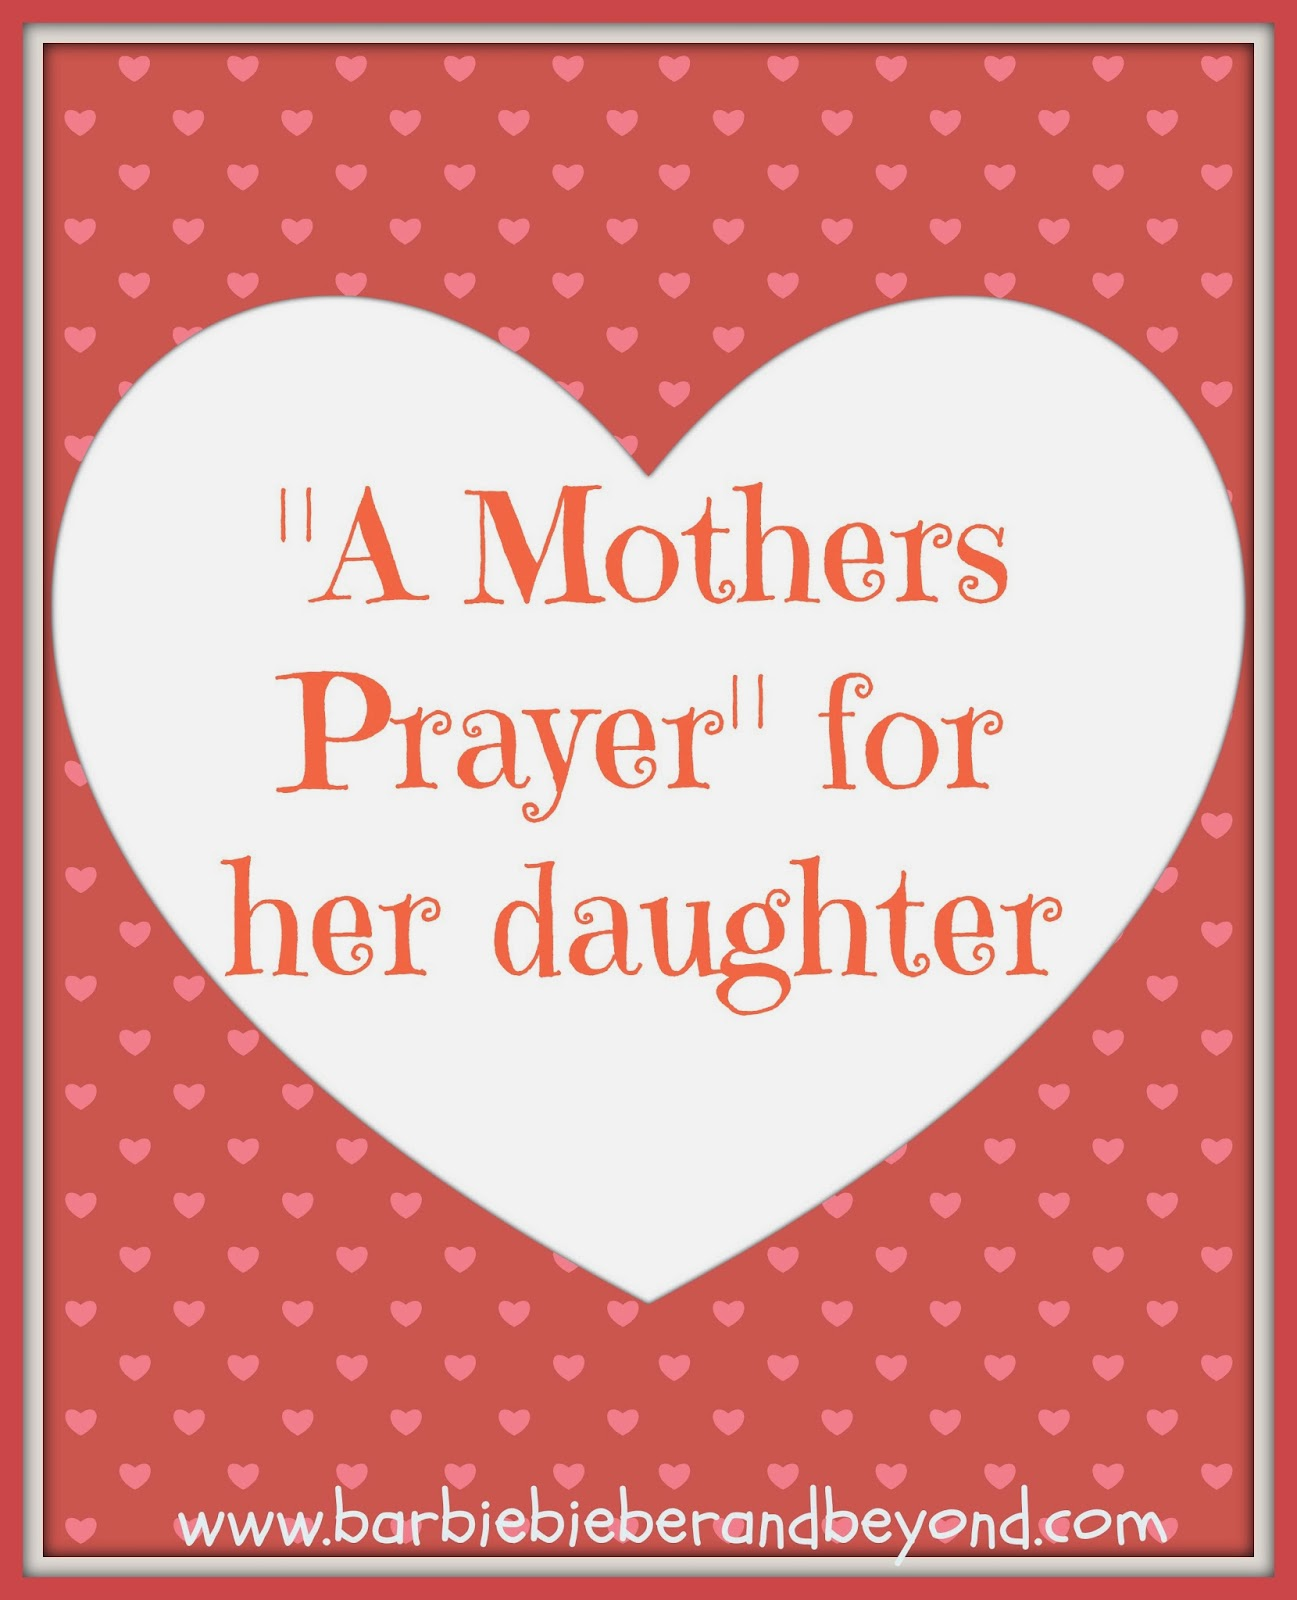 A Mothers Prayer